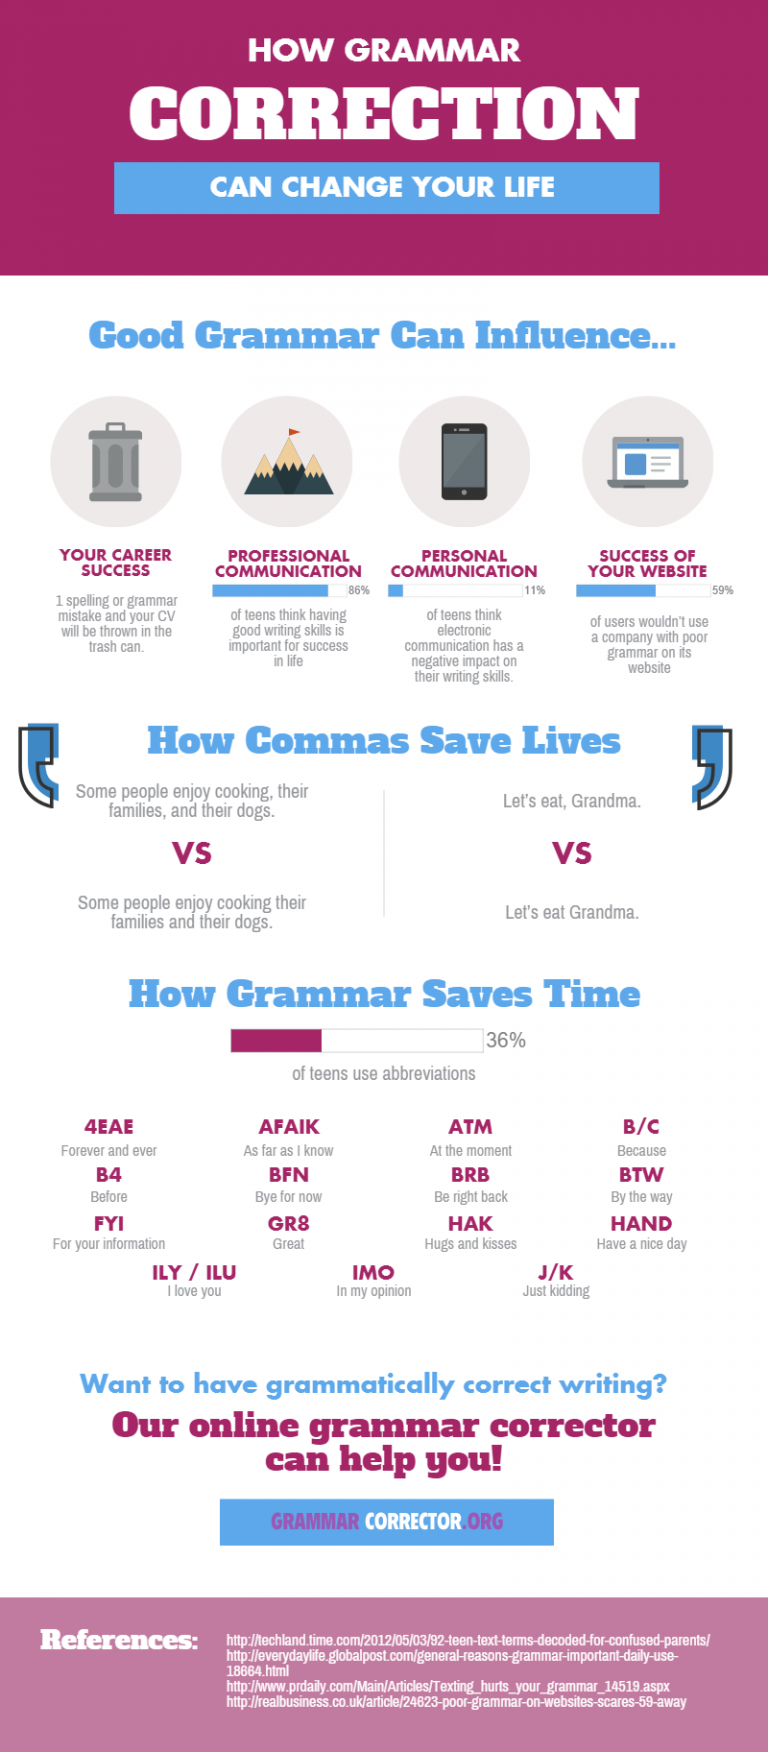 grammar correction essays Ielts writing correction service: correction of grammar errors charlie helped me structure my essays properly.